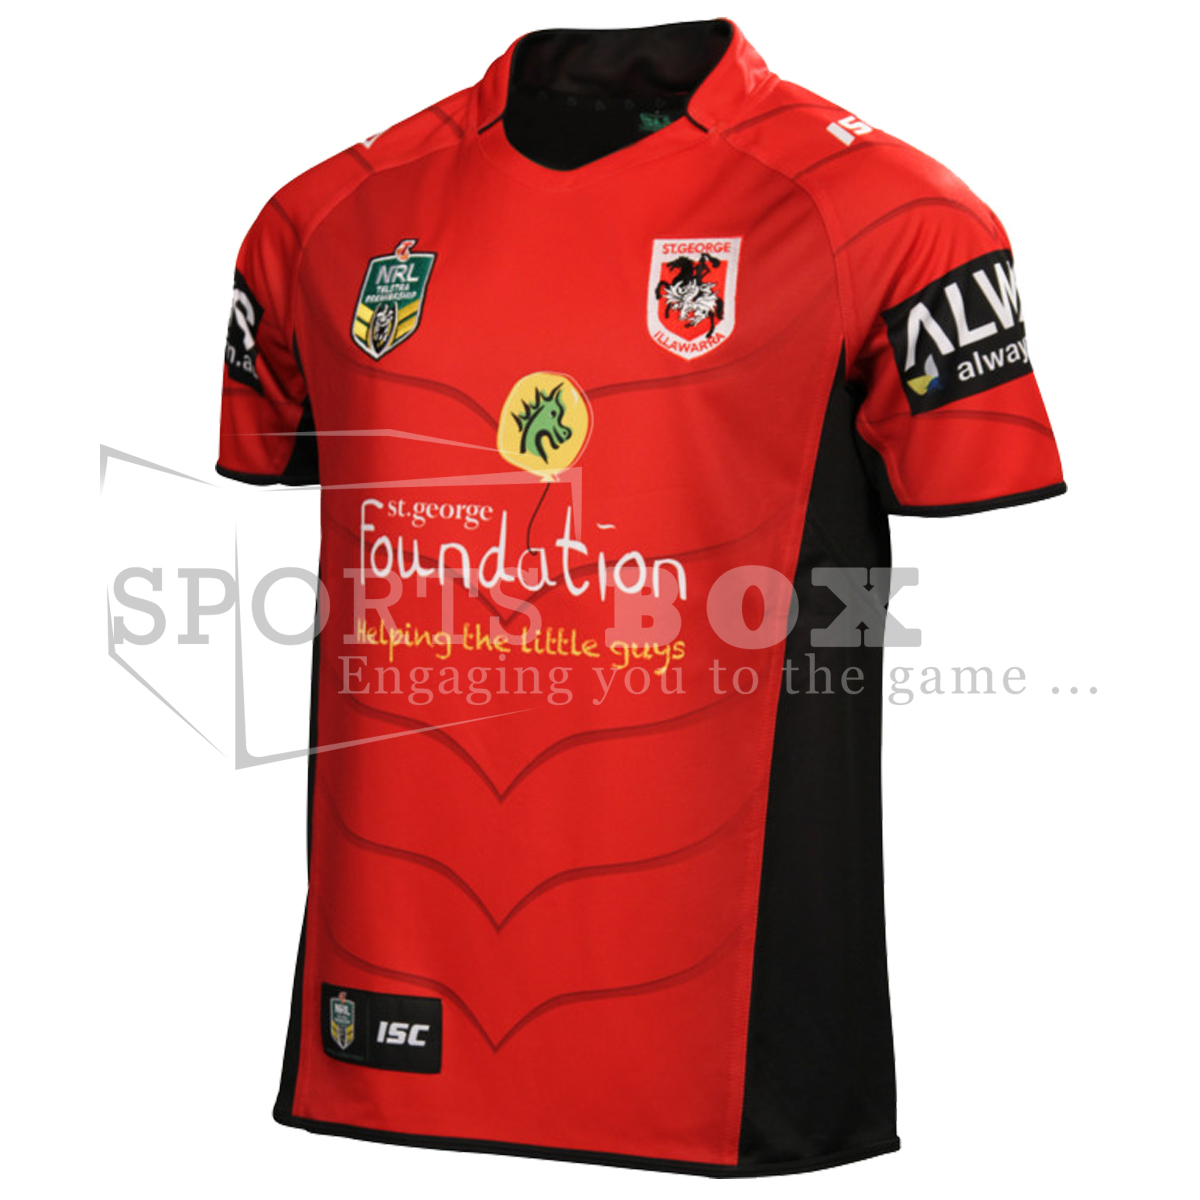 St George Dragons Charity Jersey